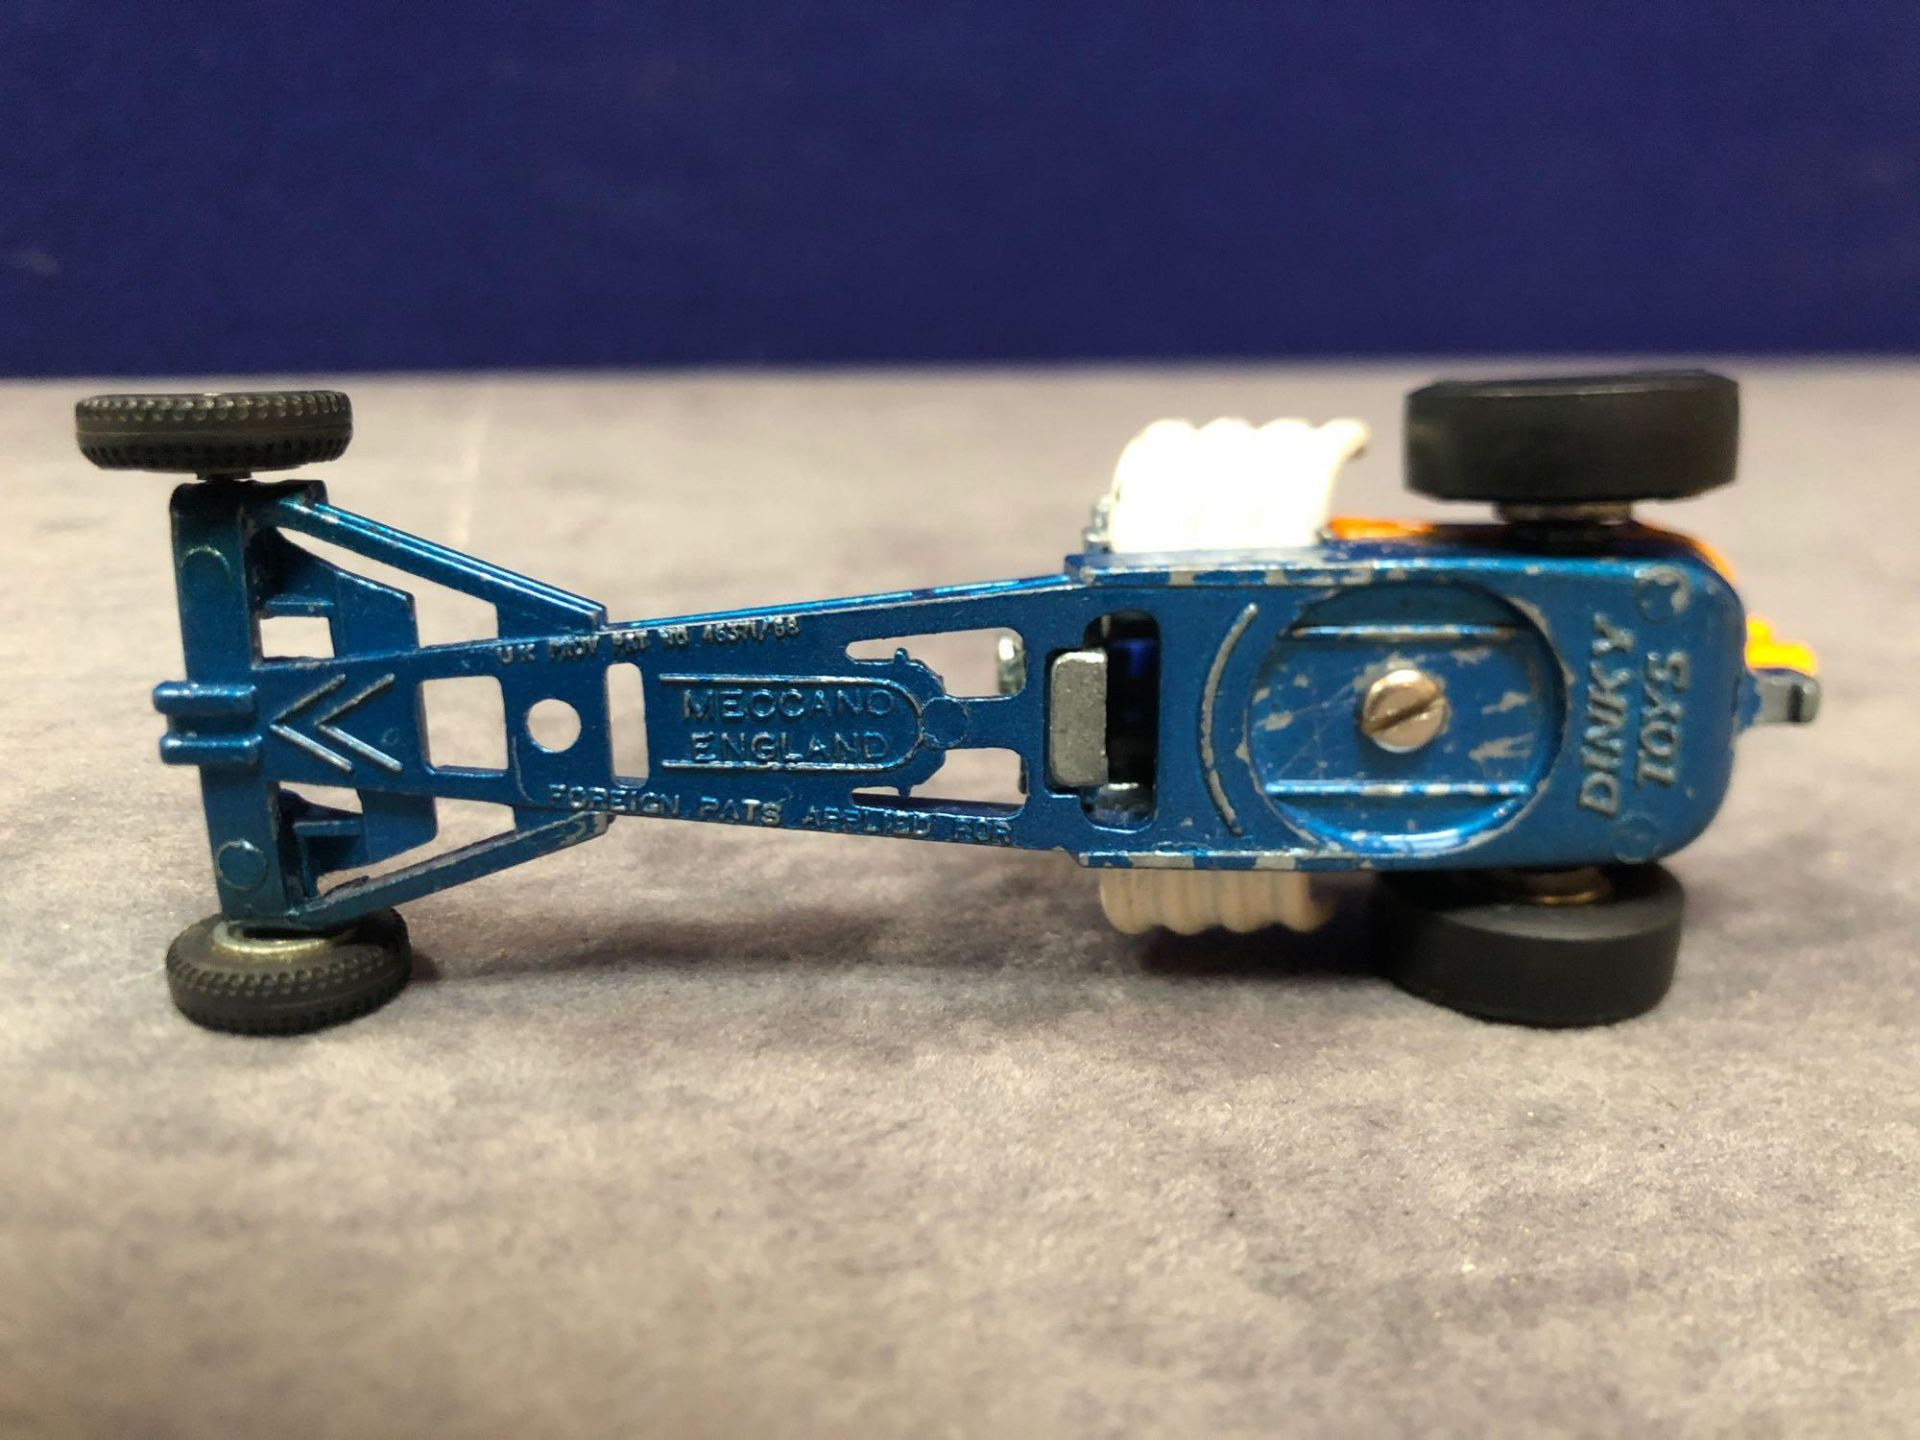 Dinky #228 Super Sprinter Blue And Orange - Exposed Engine And Speed Wheels. Very God Model In A - Image 4 of 4